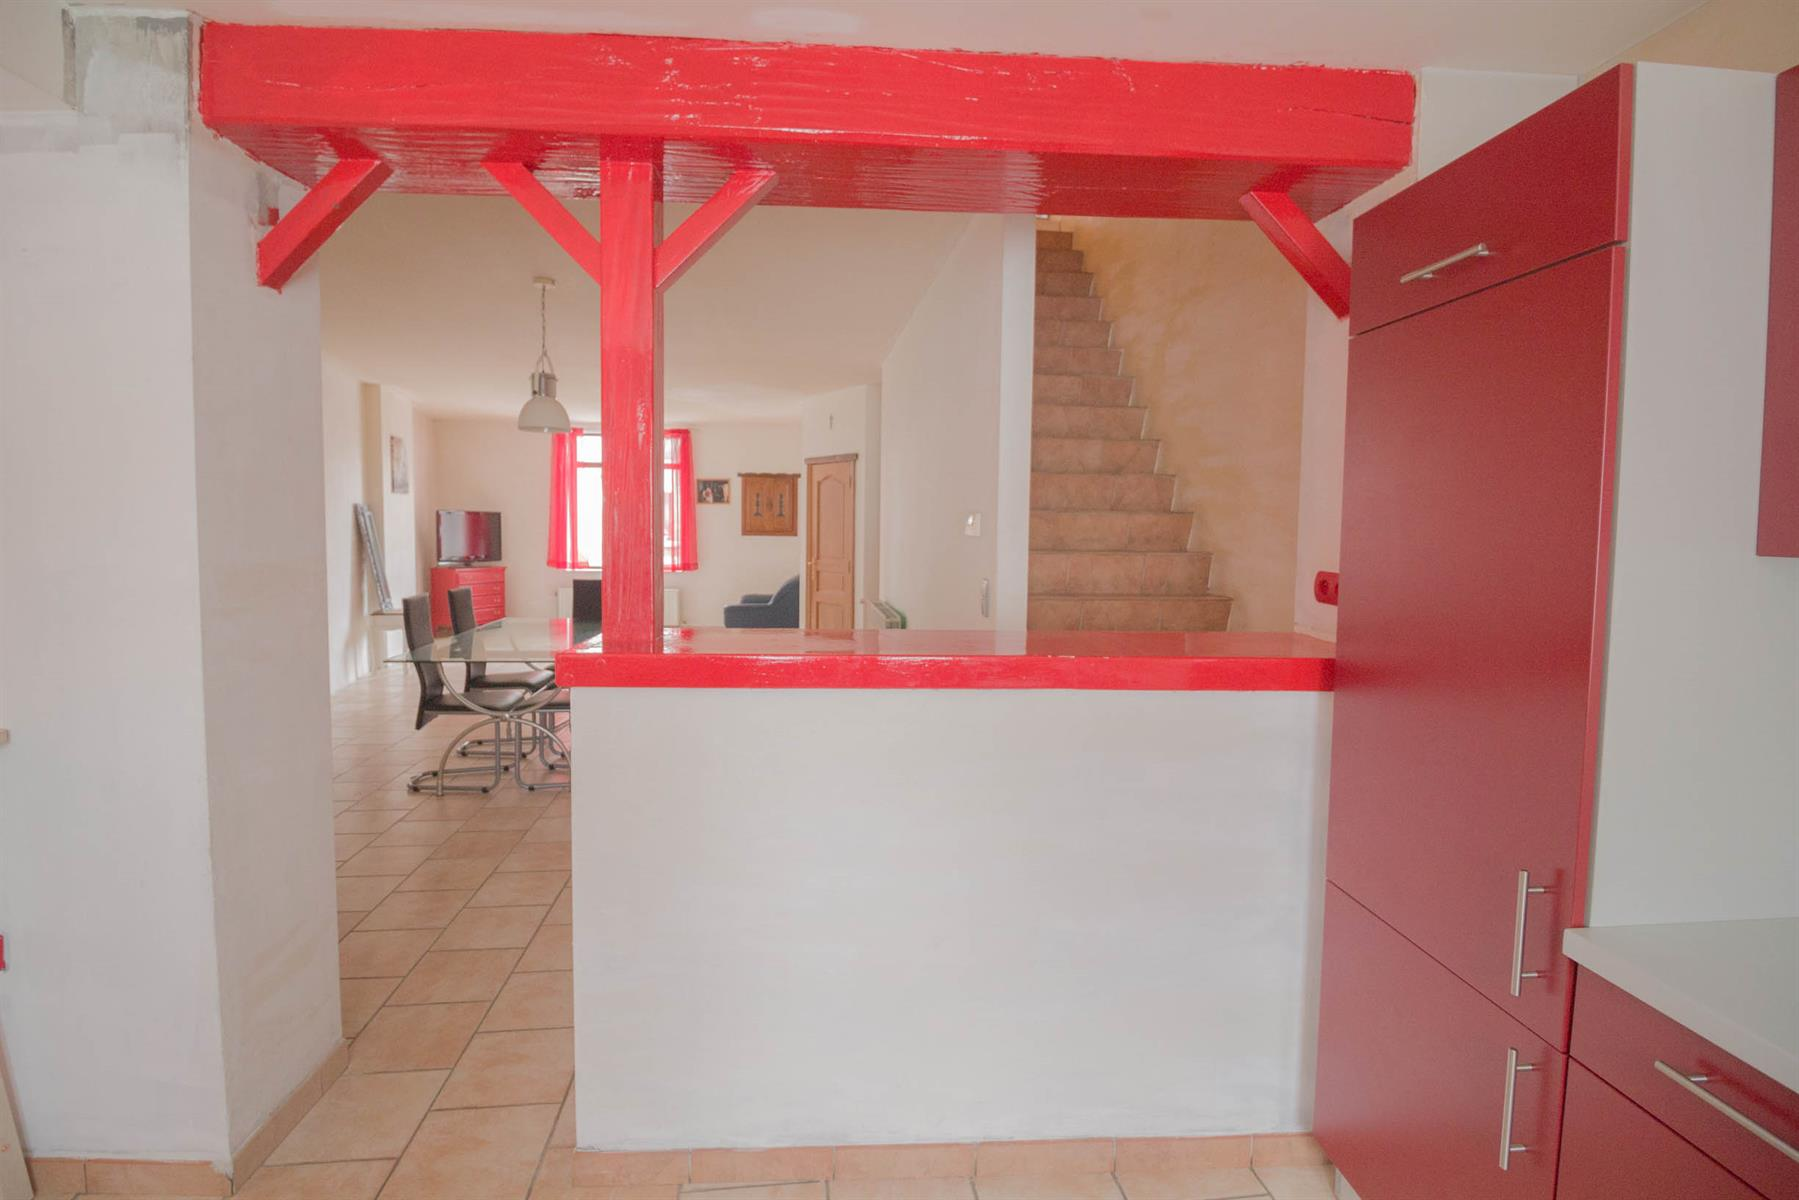 Maison - Courcelles (Trazegnies) - #4445047-9